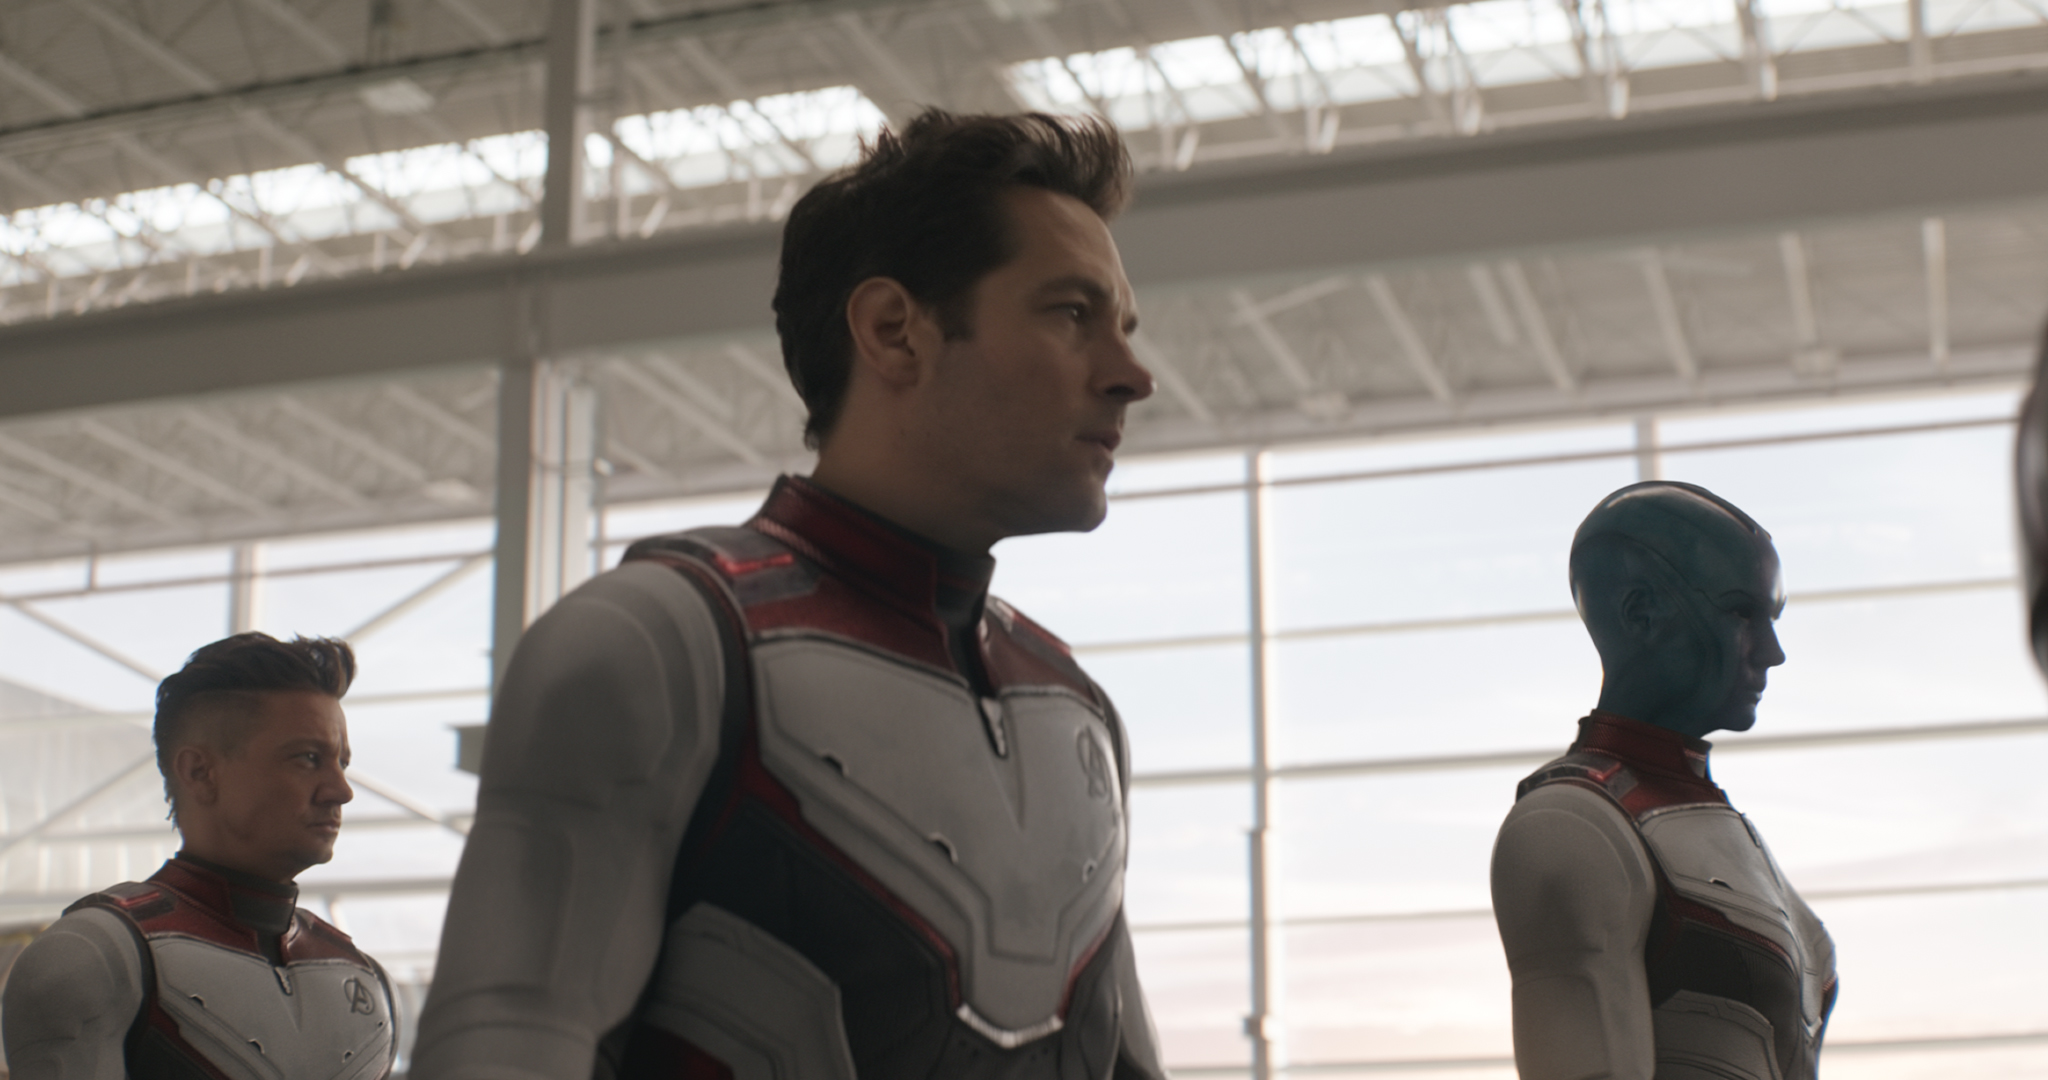 Avengers: Endgame's time travel suits, and MCU canon, challenged the design team